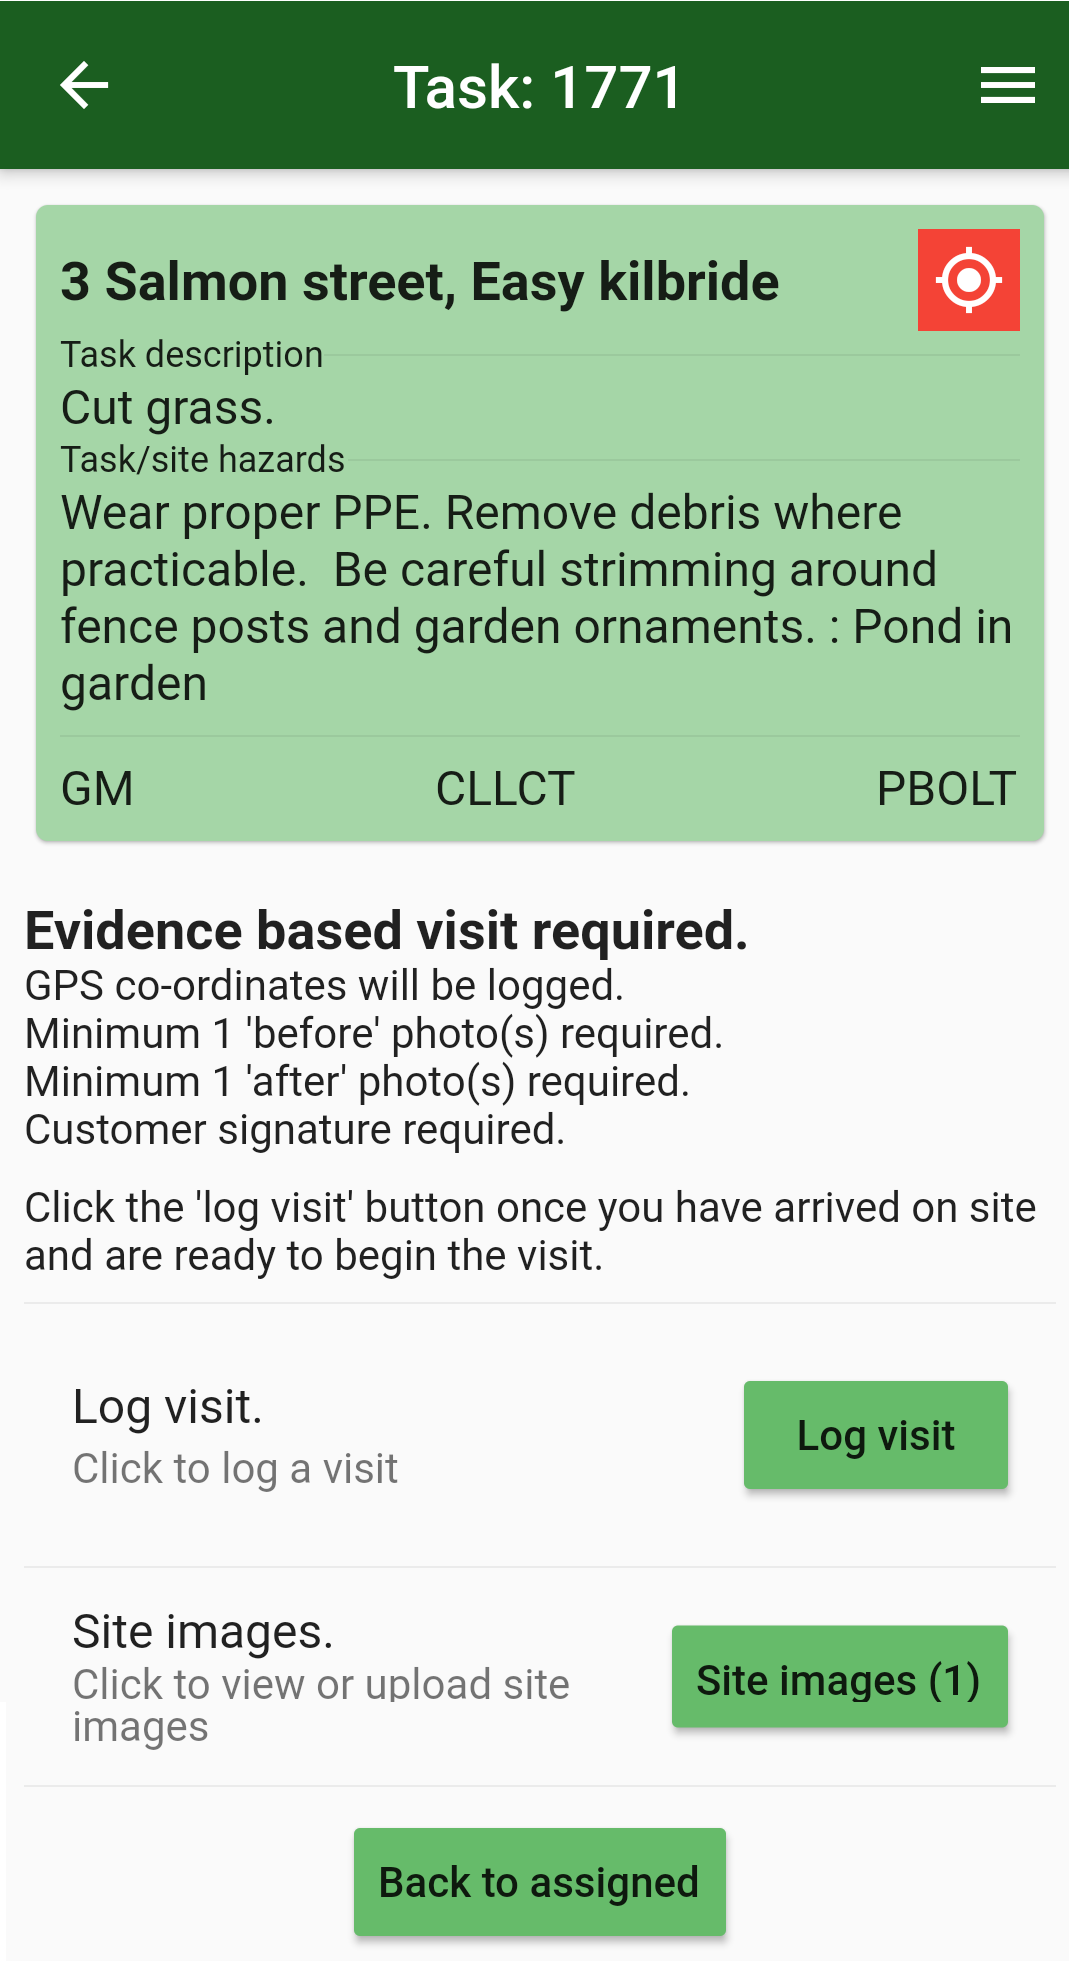 Details about the selected task and its available options